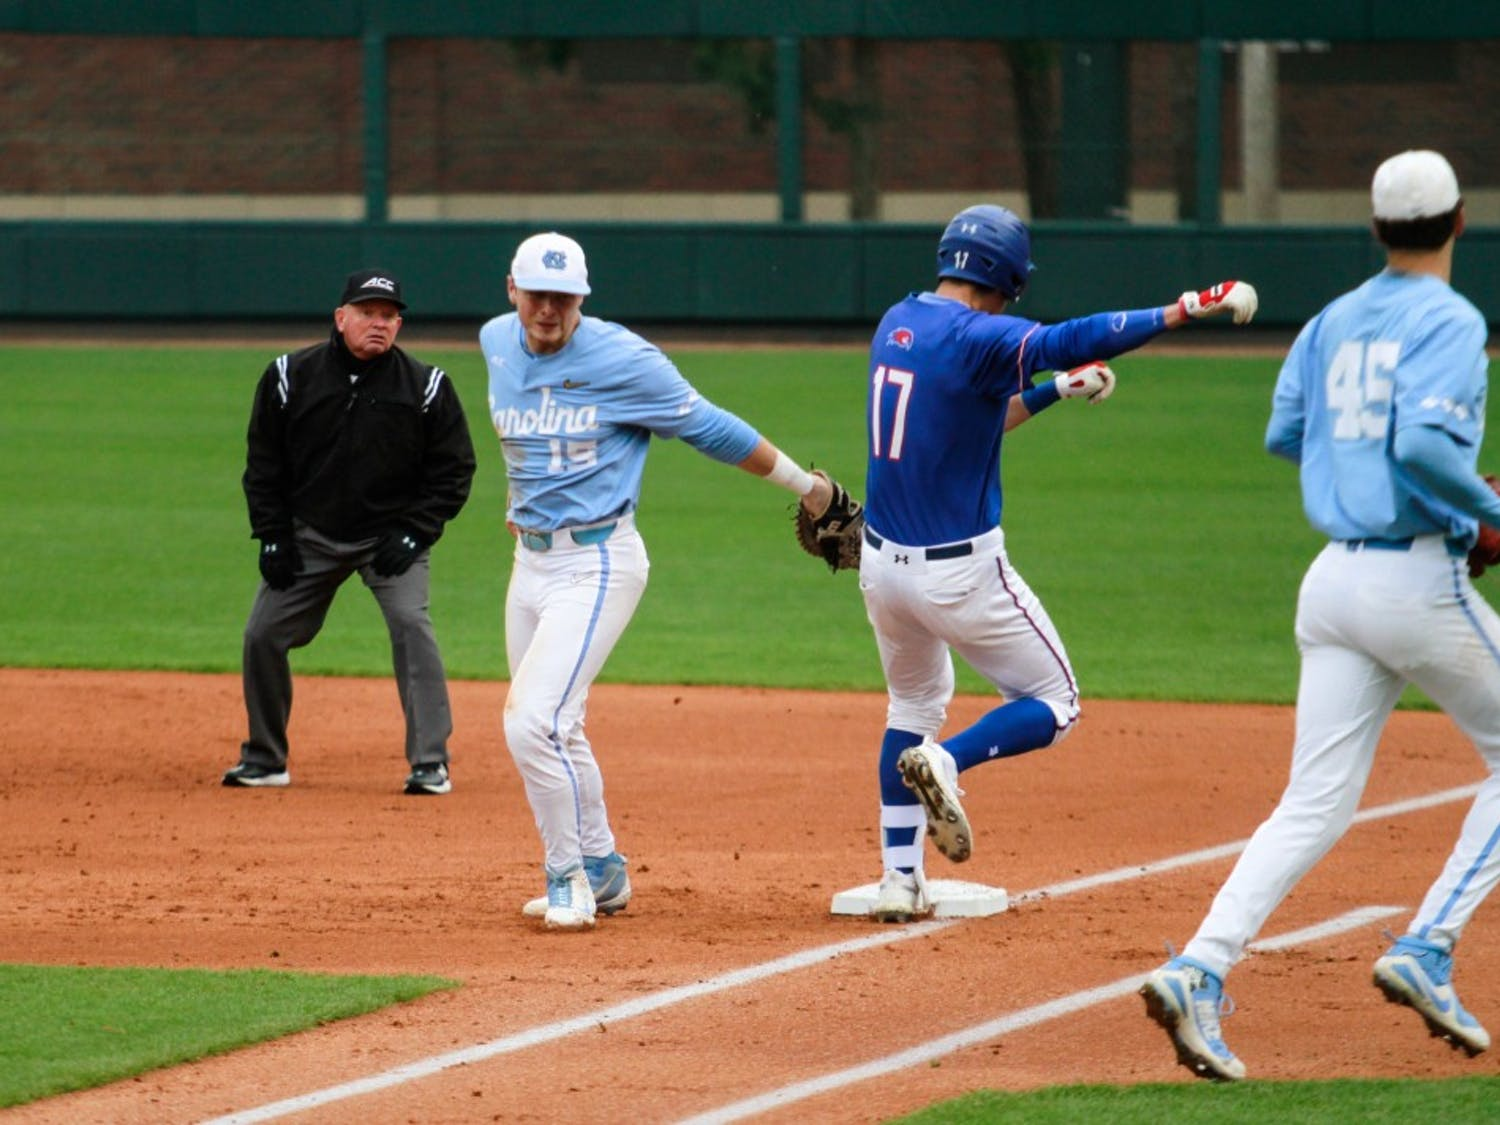 UNC first baseman junior Michael Busch (15) attempts to tag an opponent out leading to a disputed call gainst UMass Lowell on Sunday, March 3, 2019 at Boshamer Stadium.